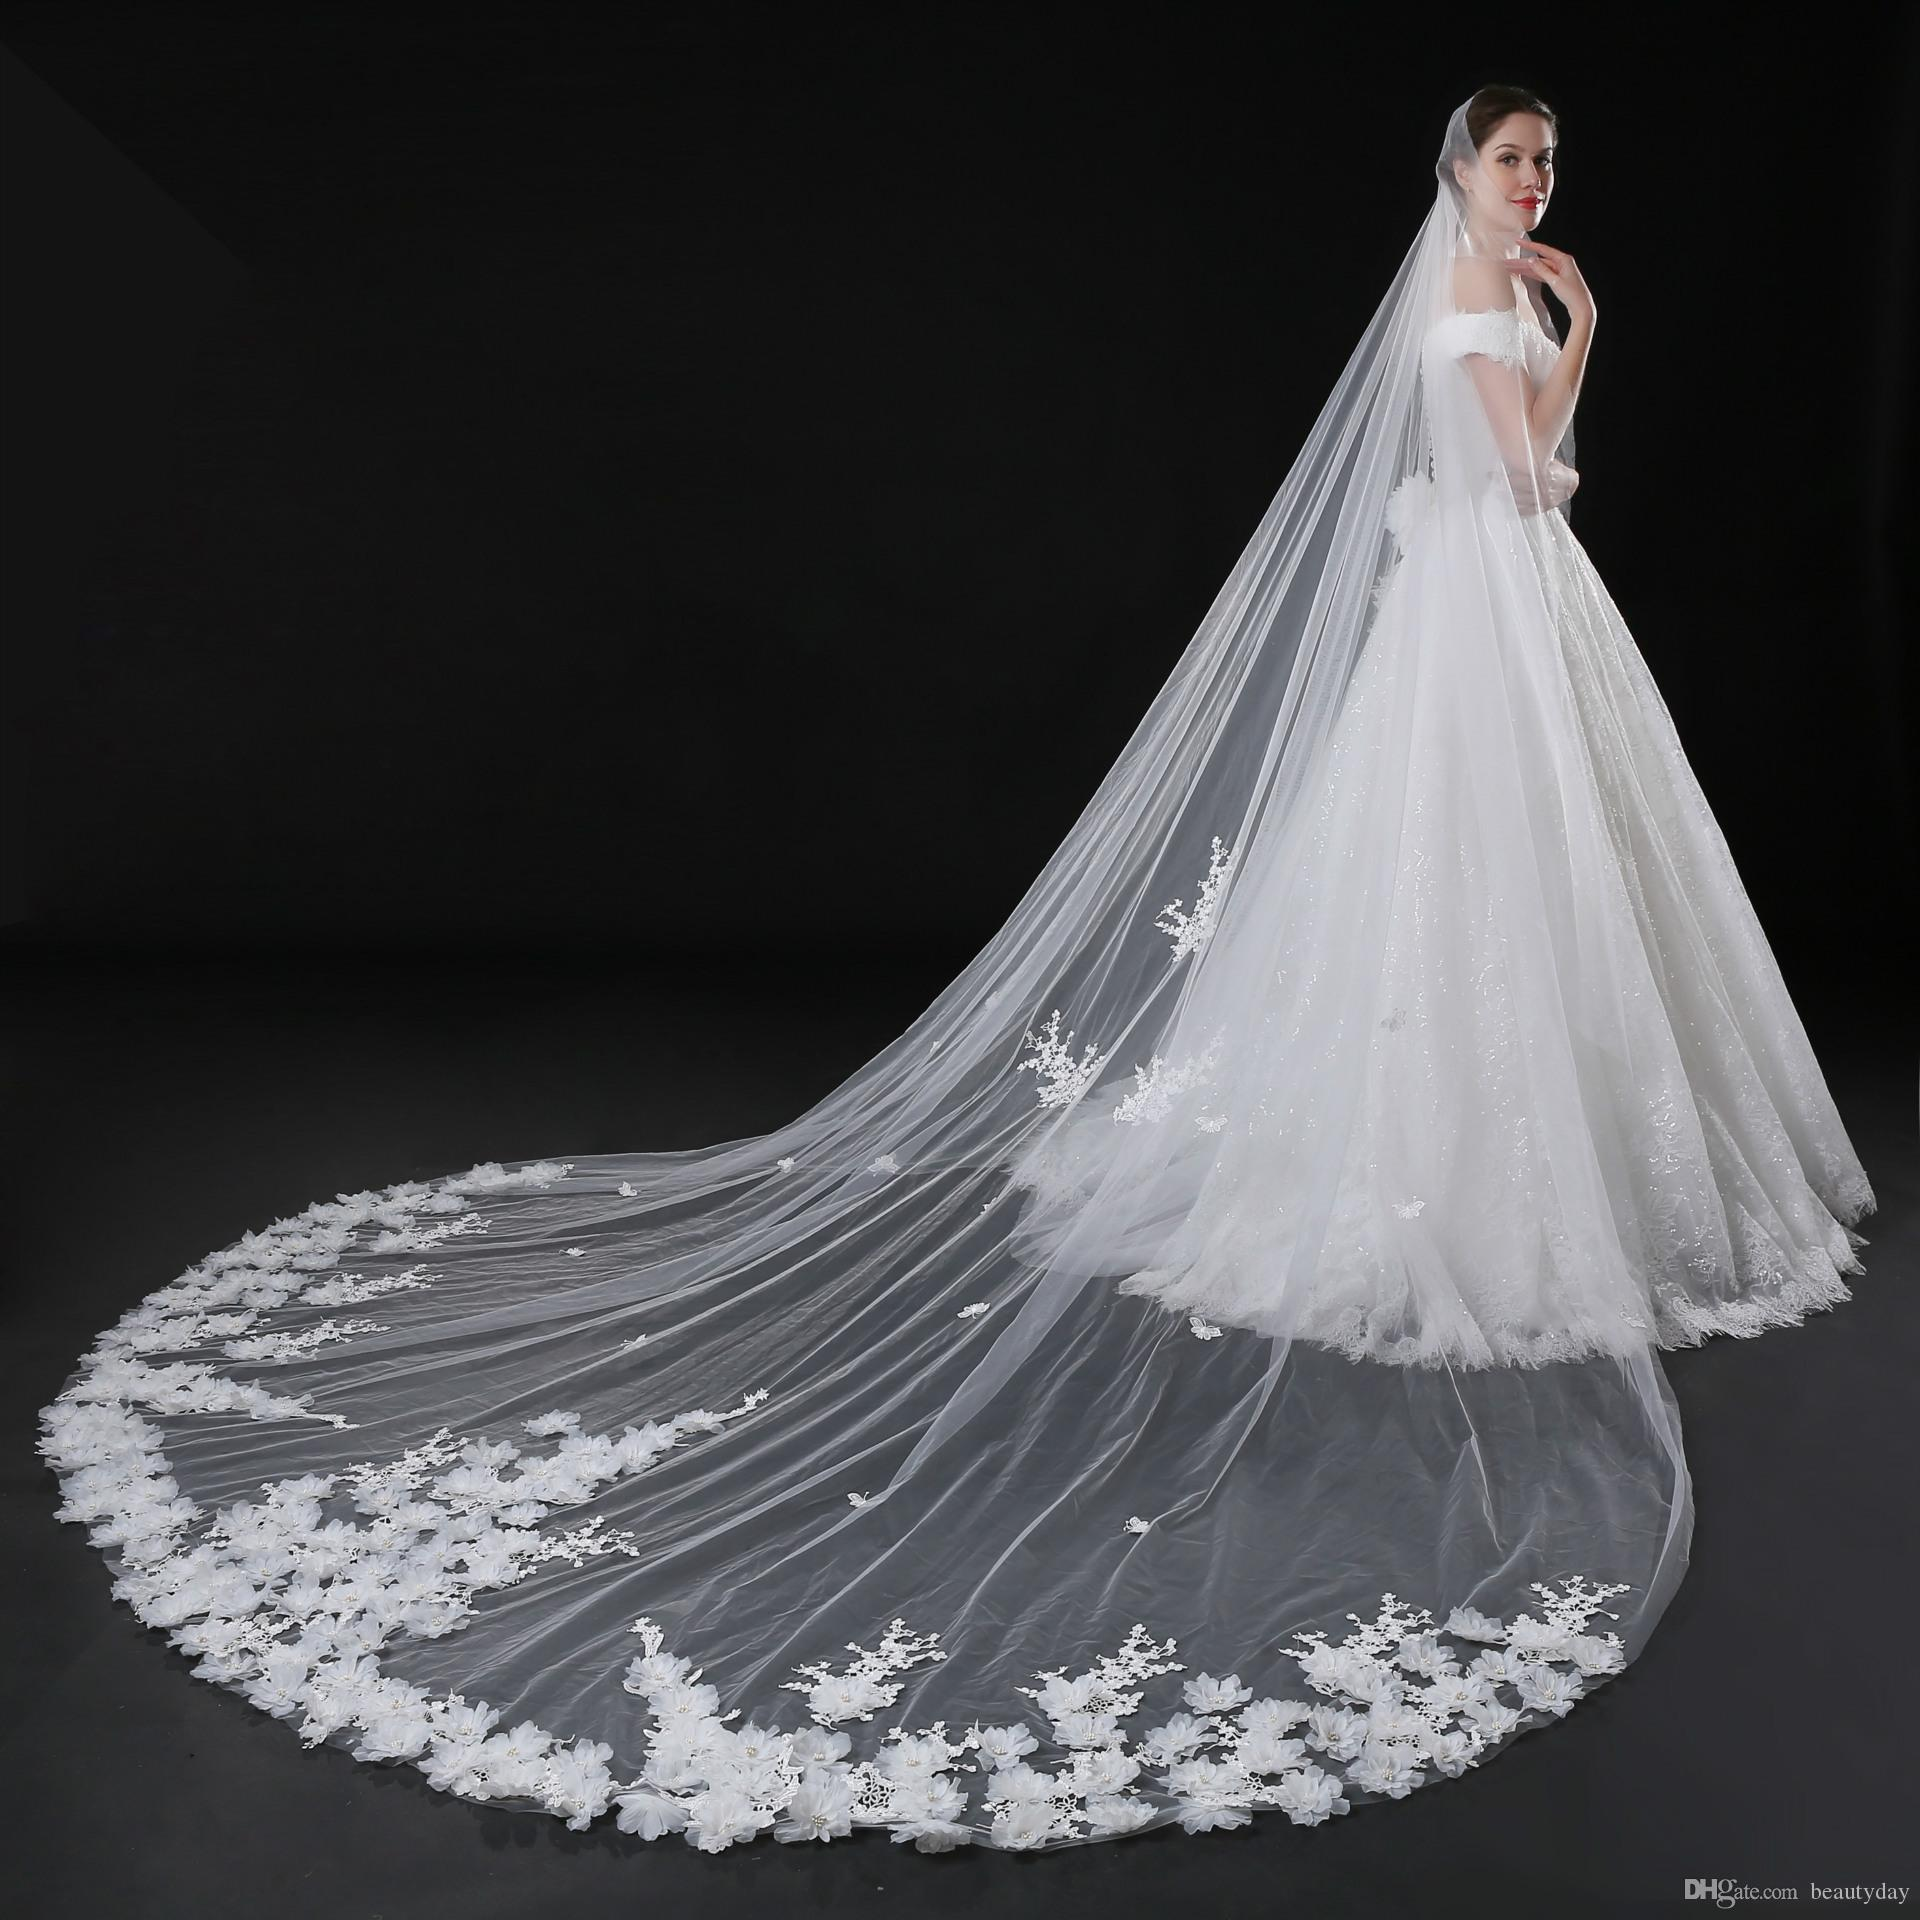 Cathedral Bridal Veils For Wedding Dress Bridal Gown 3D Flowers Soft Tulle White Ivory Tulle One Layer With Comb 5 Meters In Stock